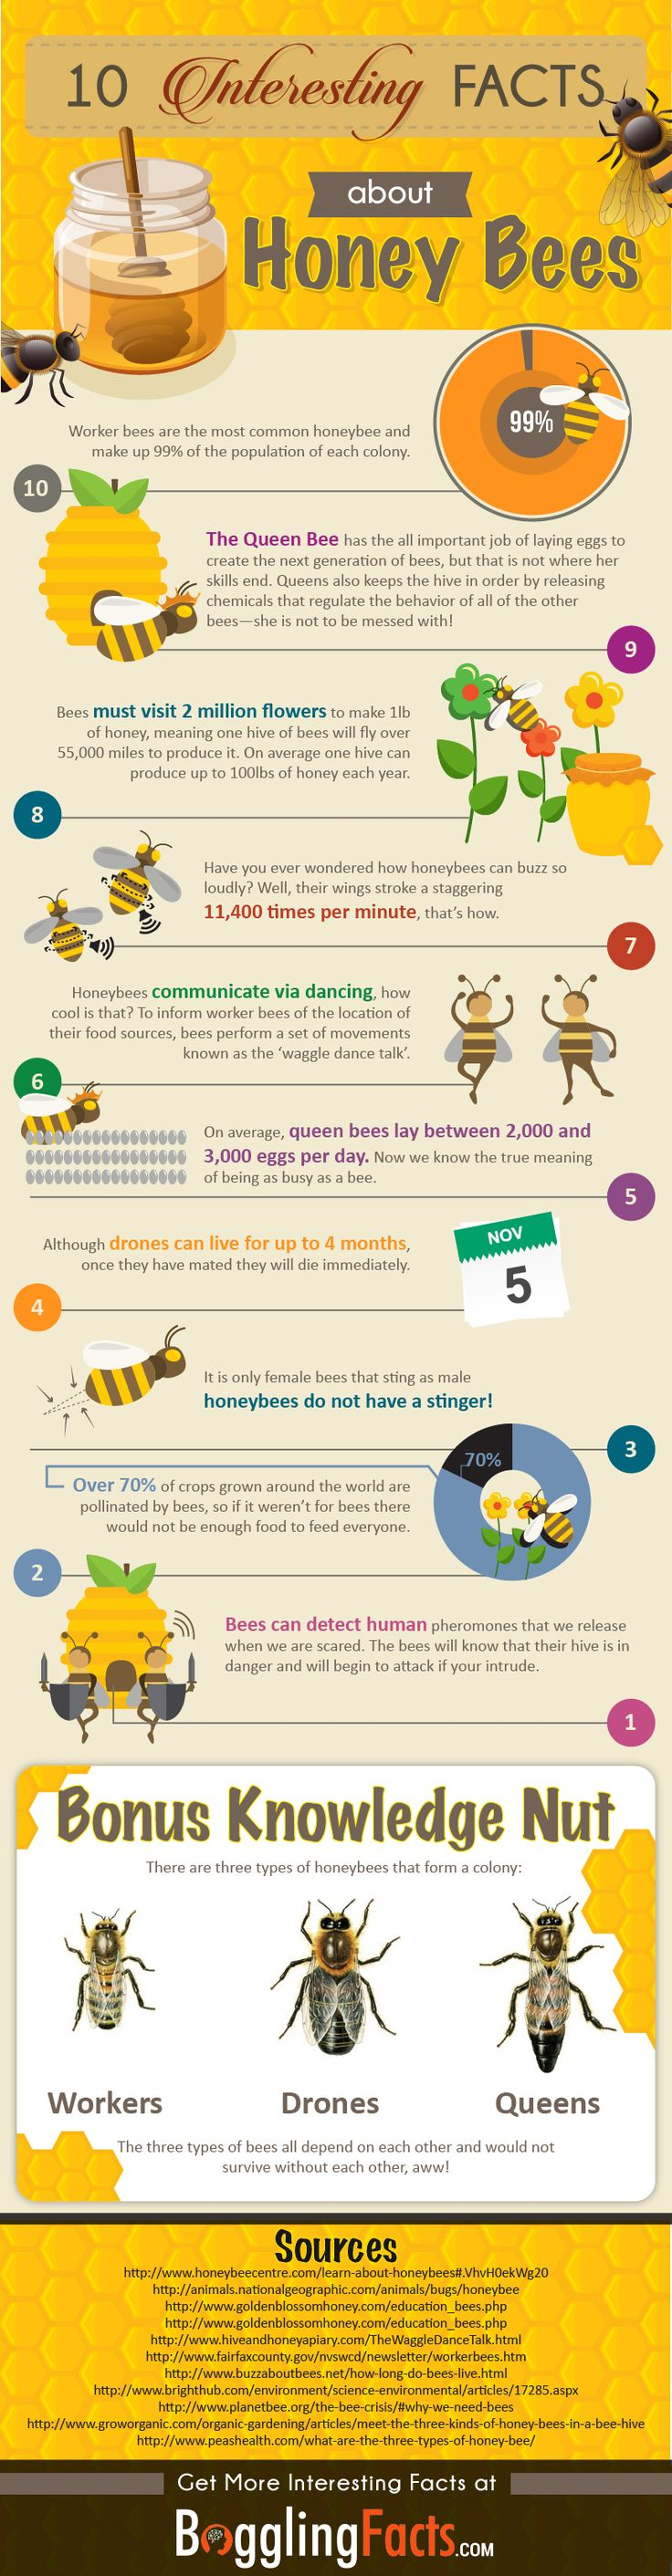 10 Interesting Honey Bee Facts You Never Knew